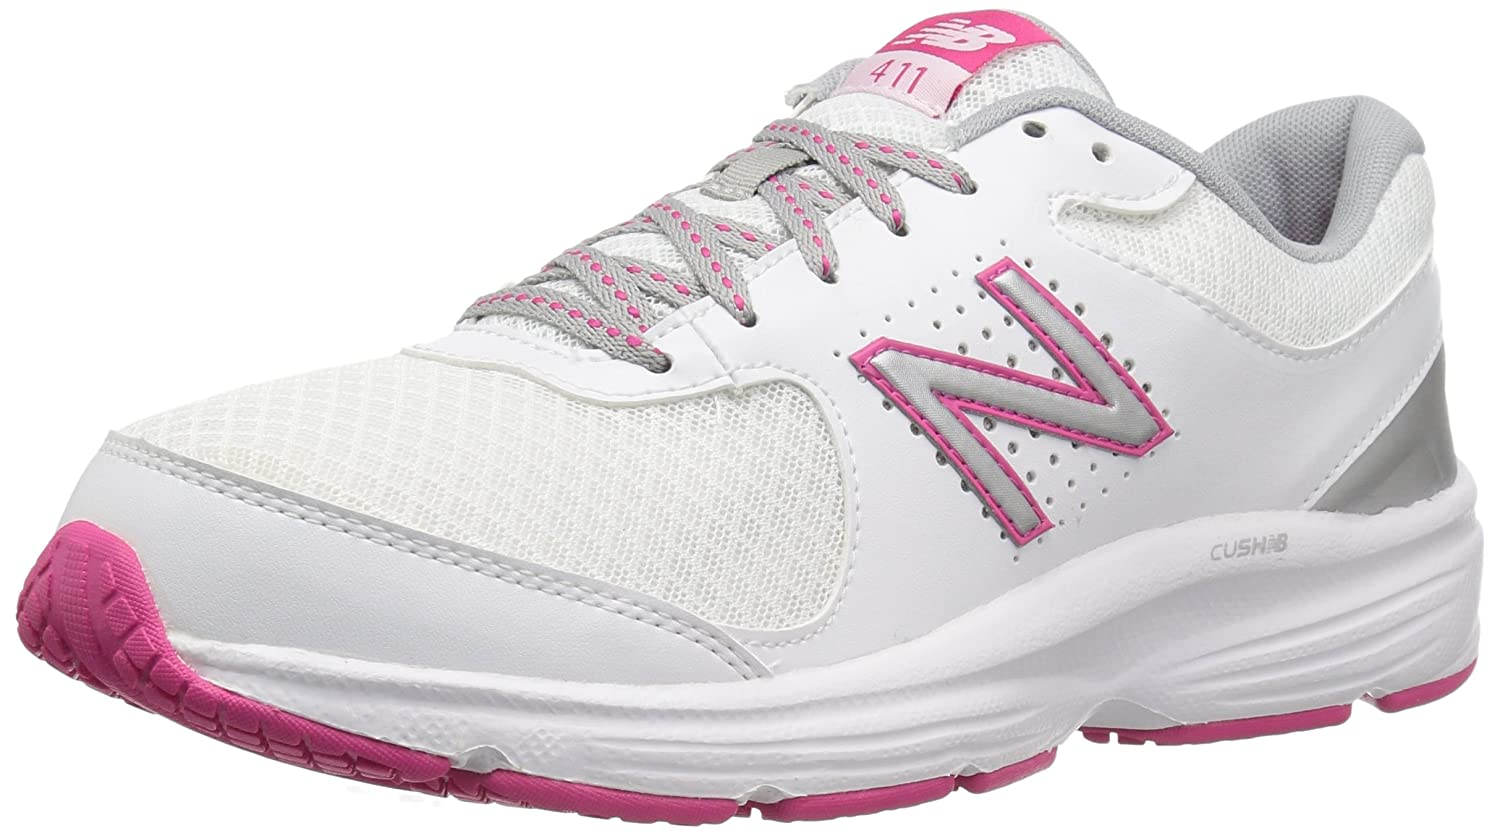 New Balance Women's WW411v2 Walking Shoe B00V3QTCCC 8 B(M) US|White/Pink